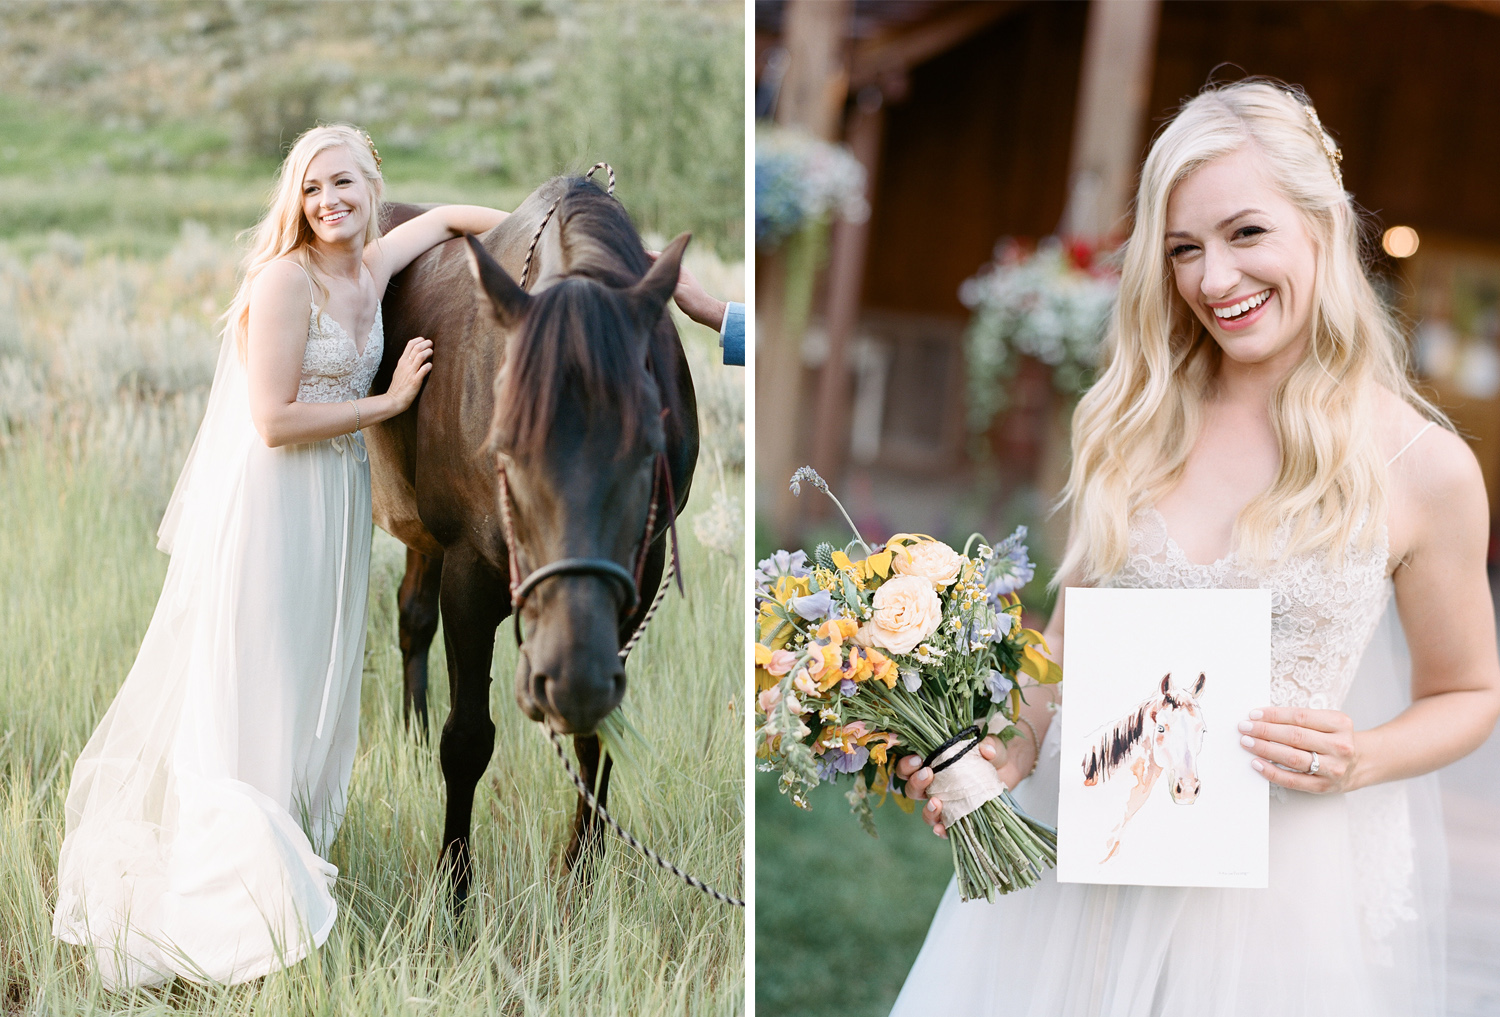 This bride loves horses and equestrian things, Equestrian bride, equine bridal photography, country wedding, wildhorse and bride, Sylvie Gil Photography